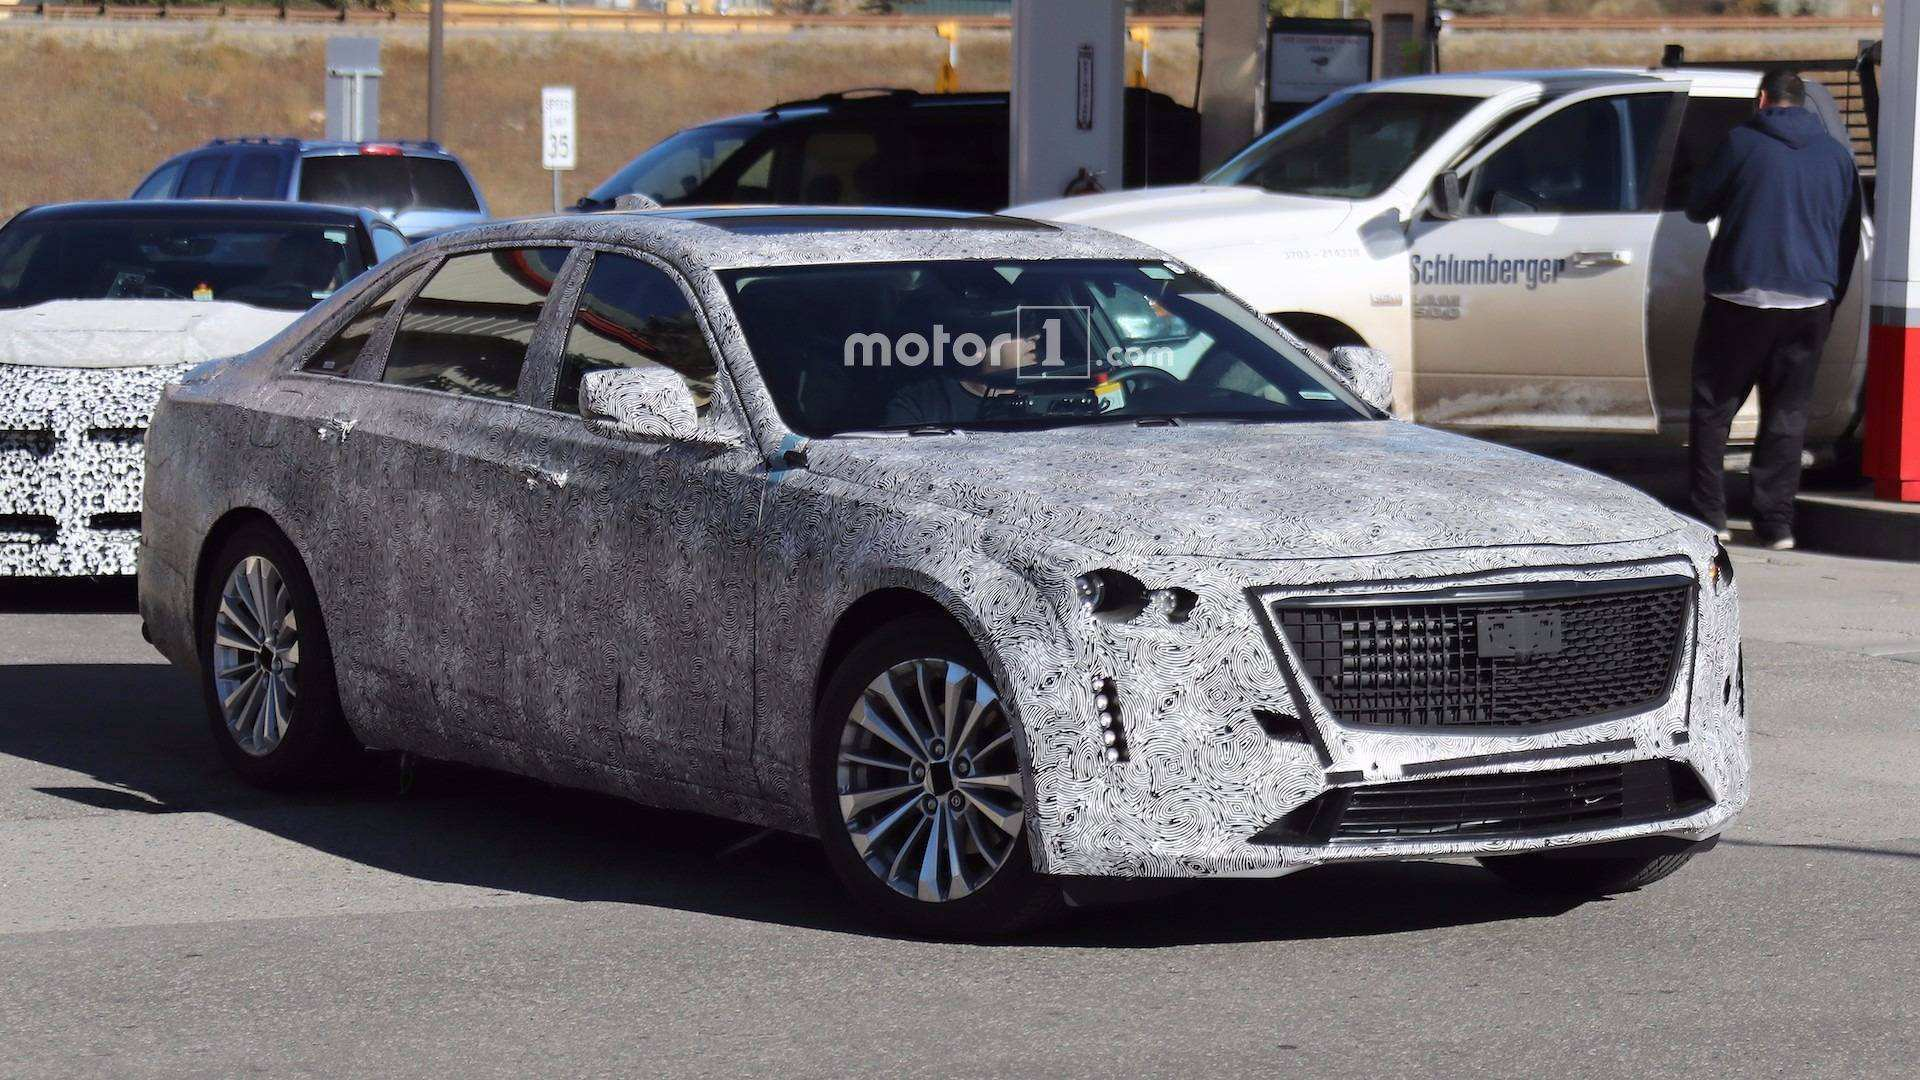 46 New 2019 Cadillac Ct5 Style for 2019 Cadillac Ct5